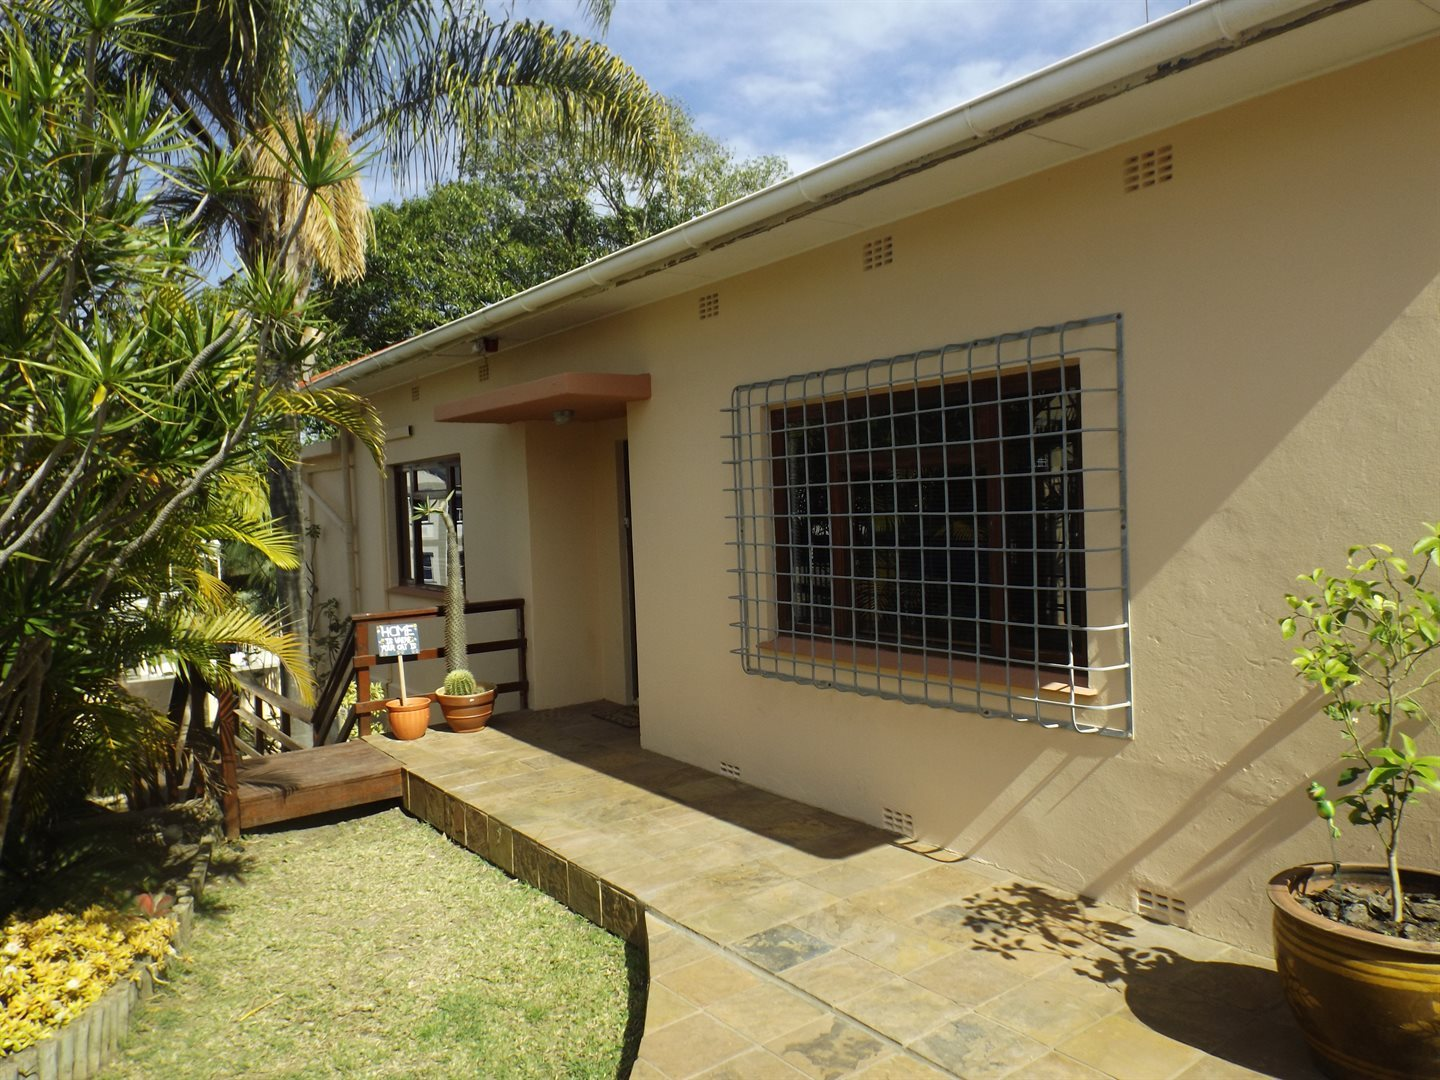 Property for Sale by DLC INC. ATTORNEYS Henry Sutherland, House, 5 Bedrooms - ZAR 2,390,000